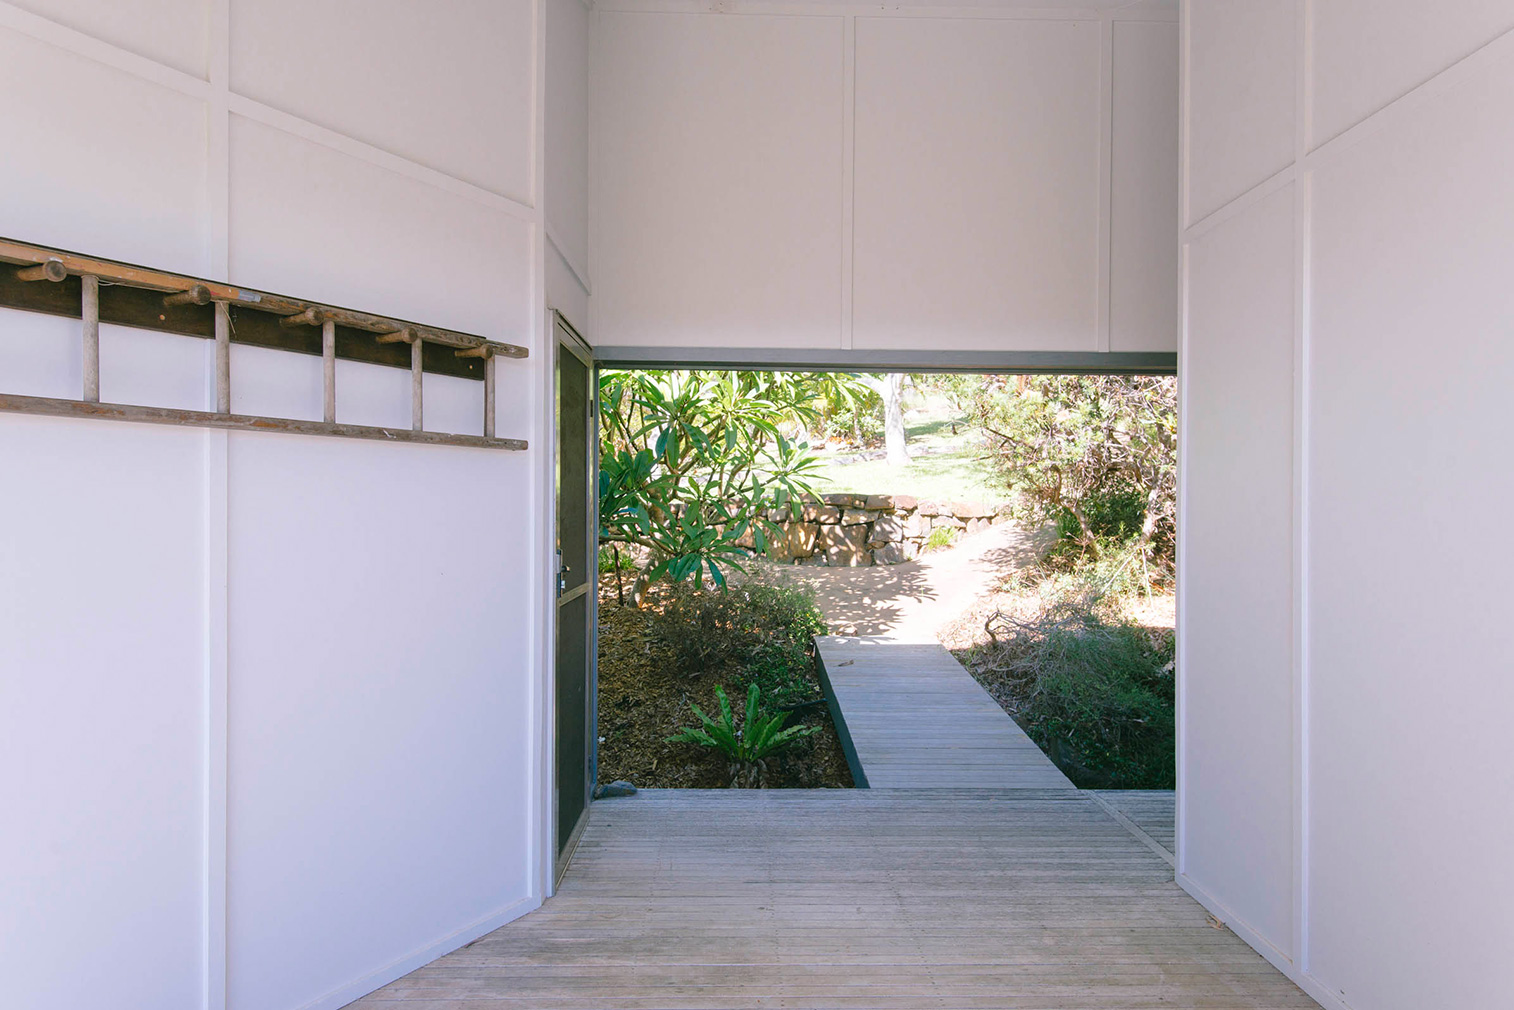 Way Way House, NSW: A covered breezeway connects the two volumes of the house